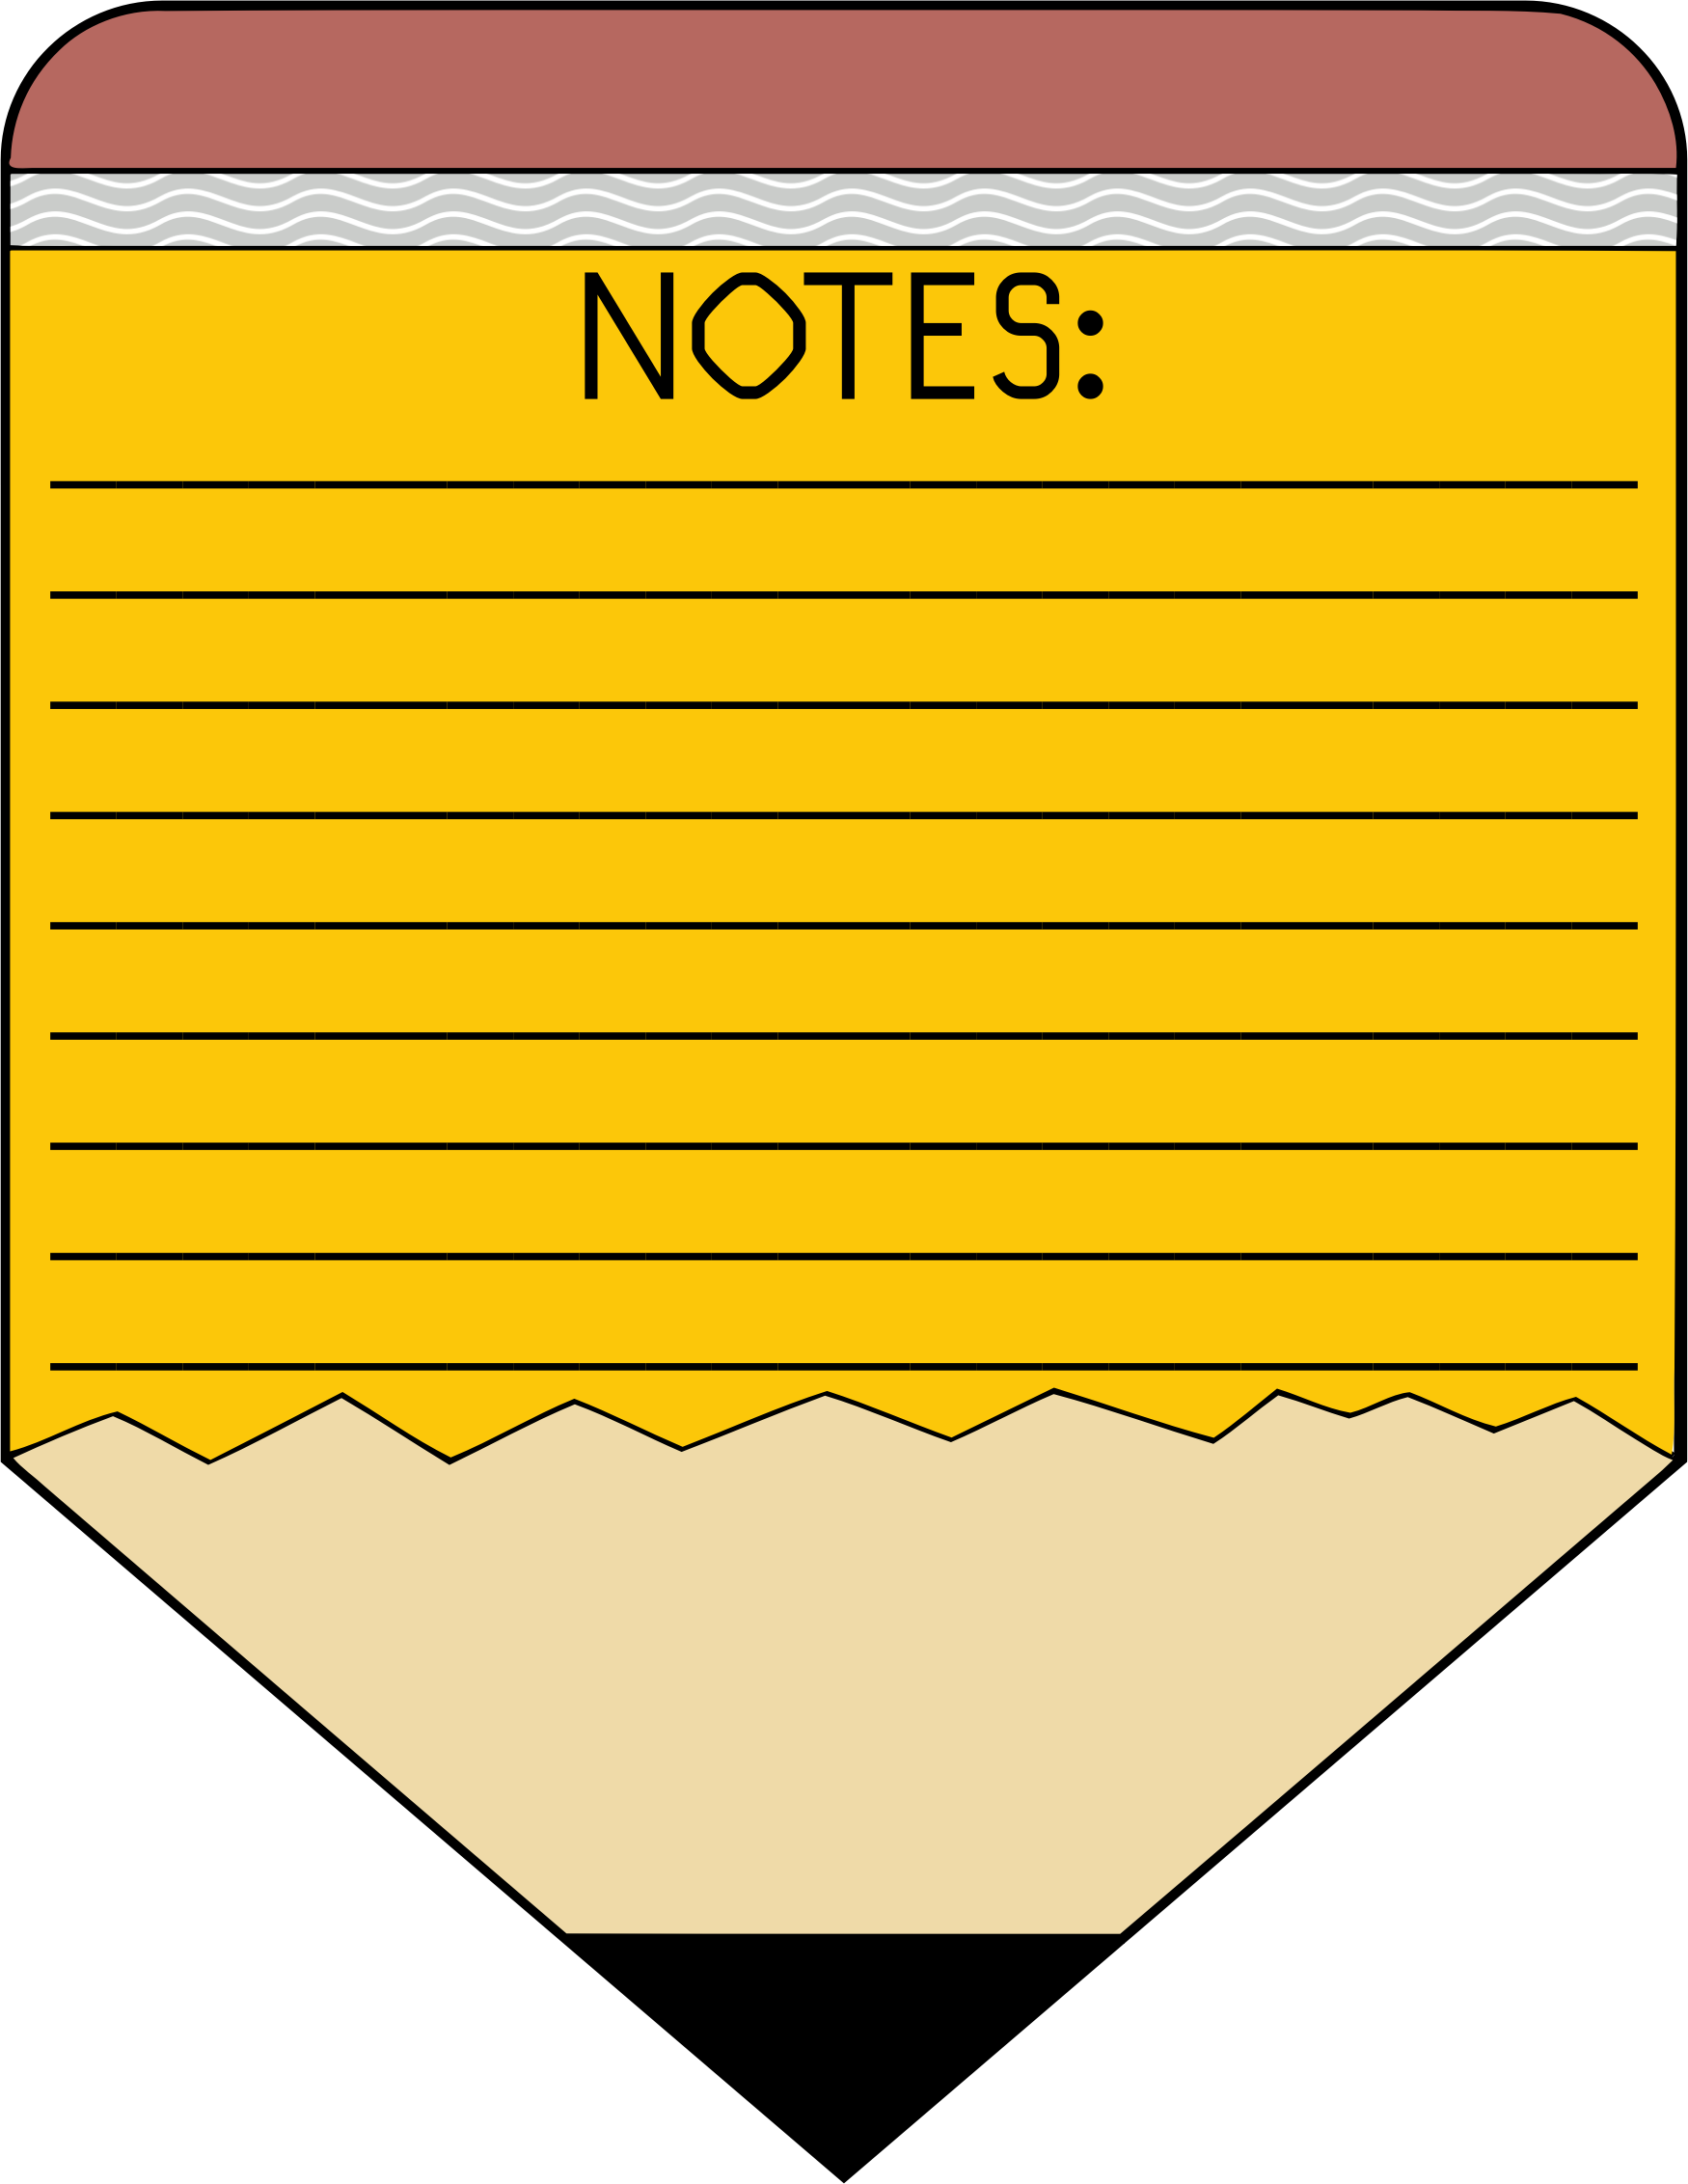 Notes. Note clipart pencil